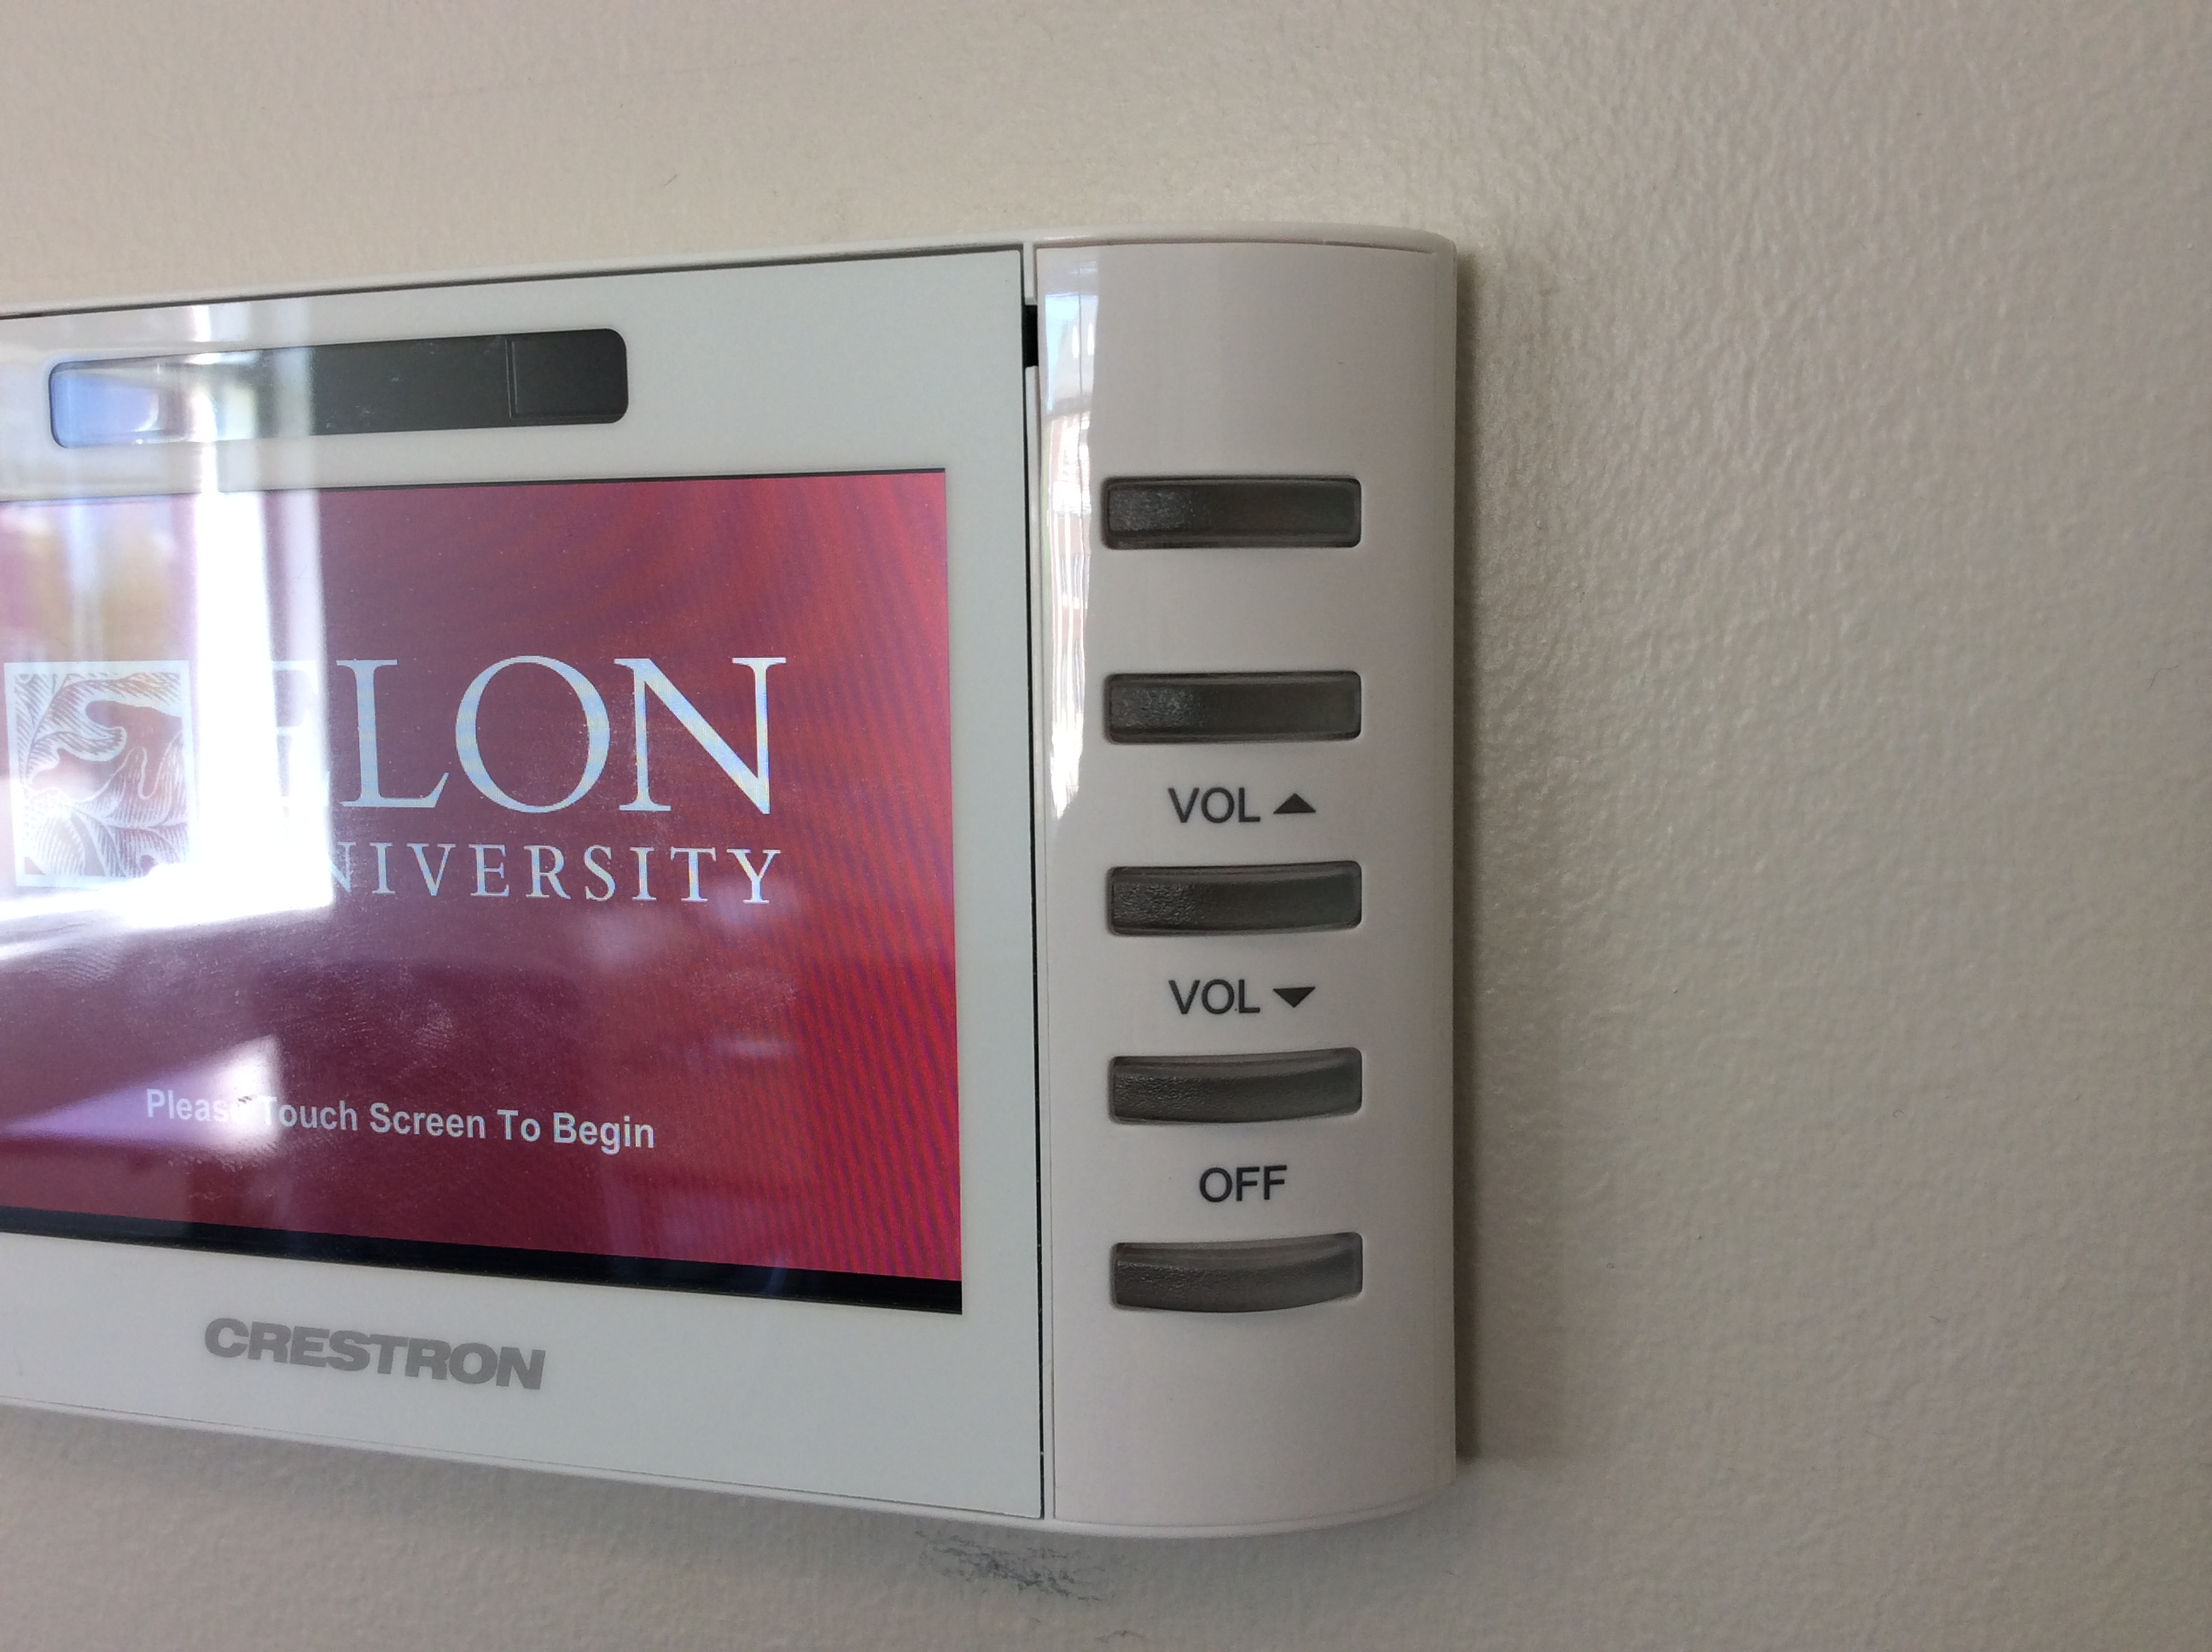 Photo of crestron control touch panel highlighting the volume up and down buttons on the right side of the wall mounted device